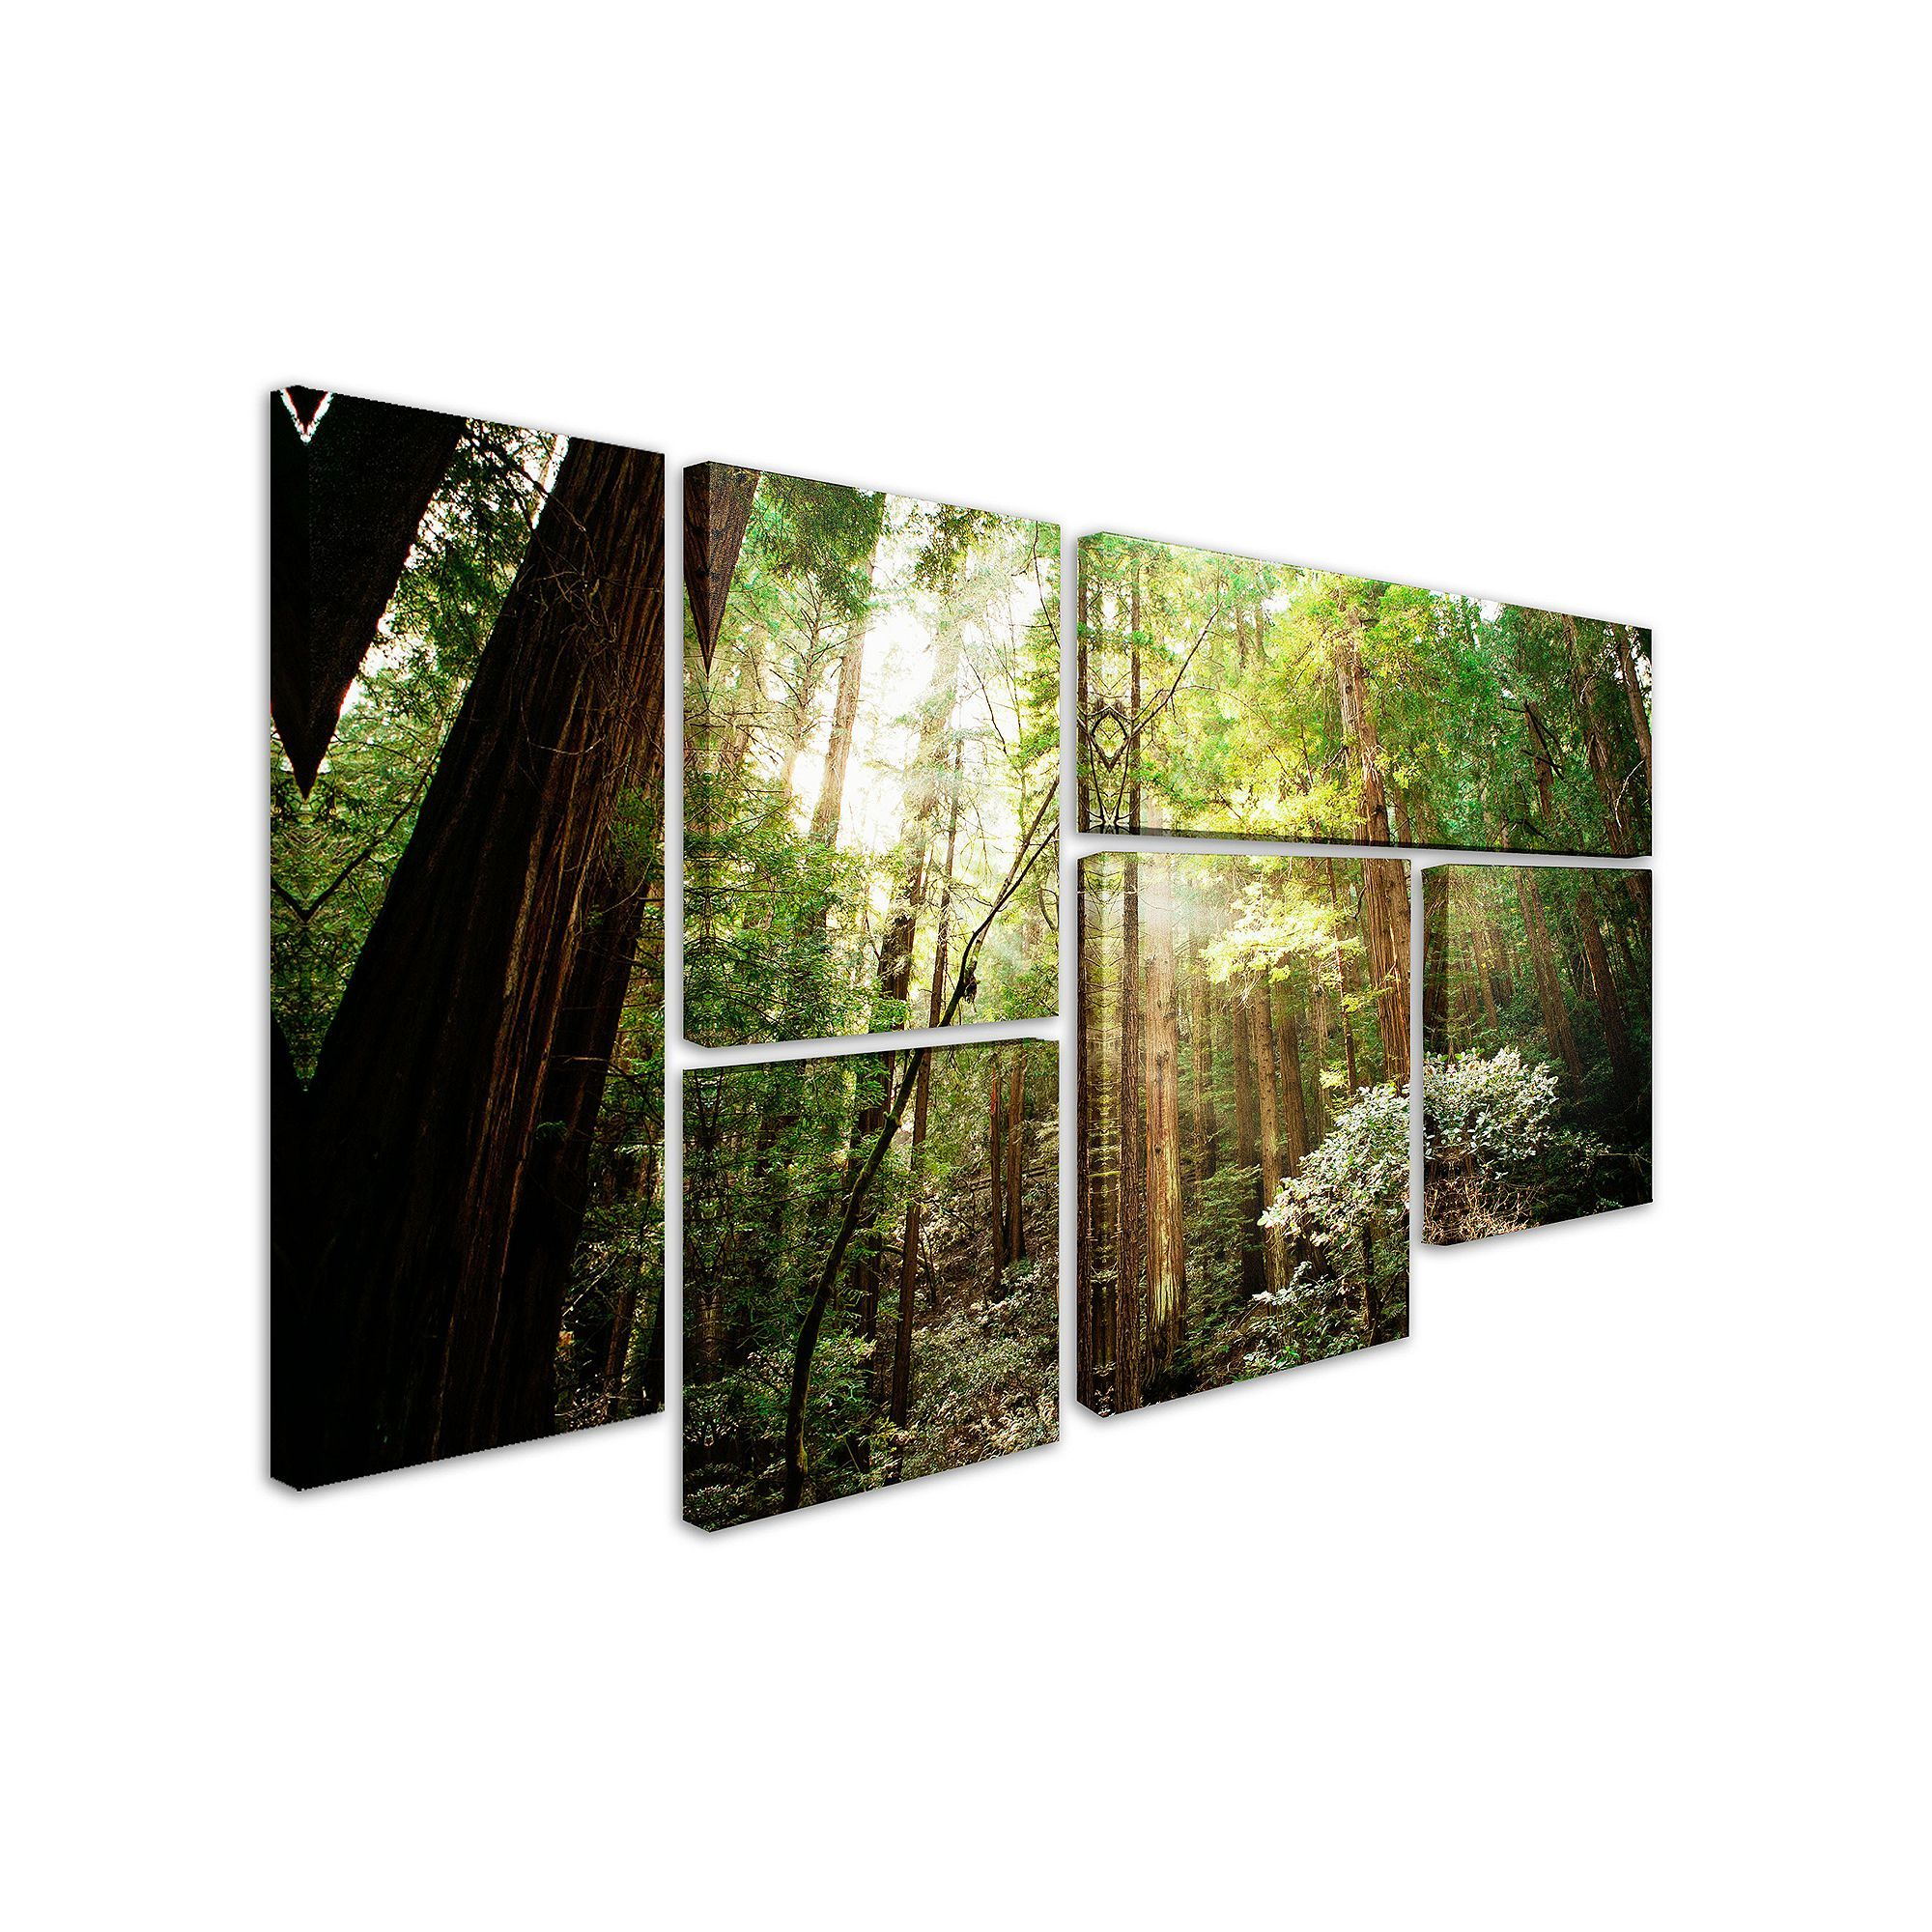 Muir woods 6 piece canvas wall art set multicolor